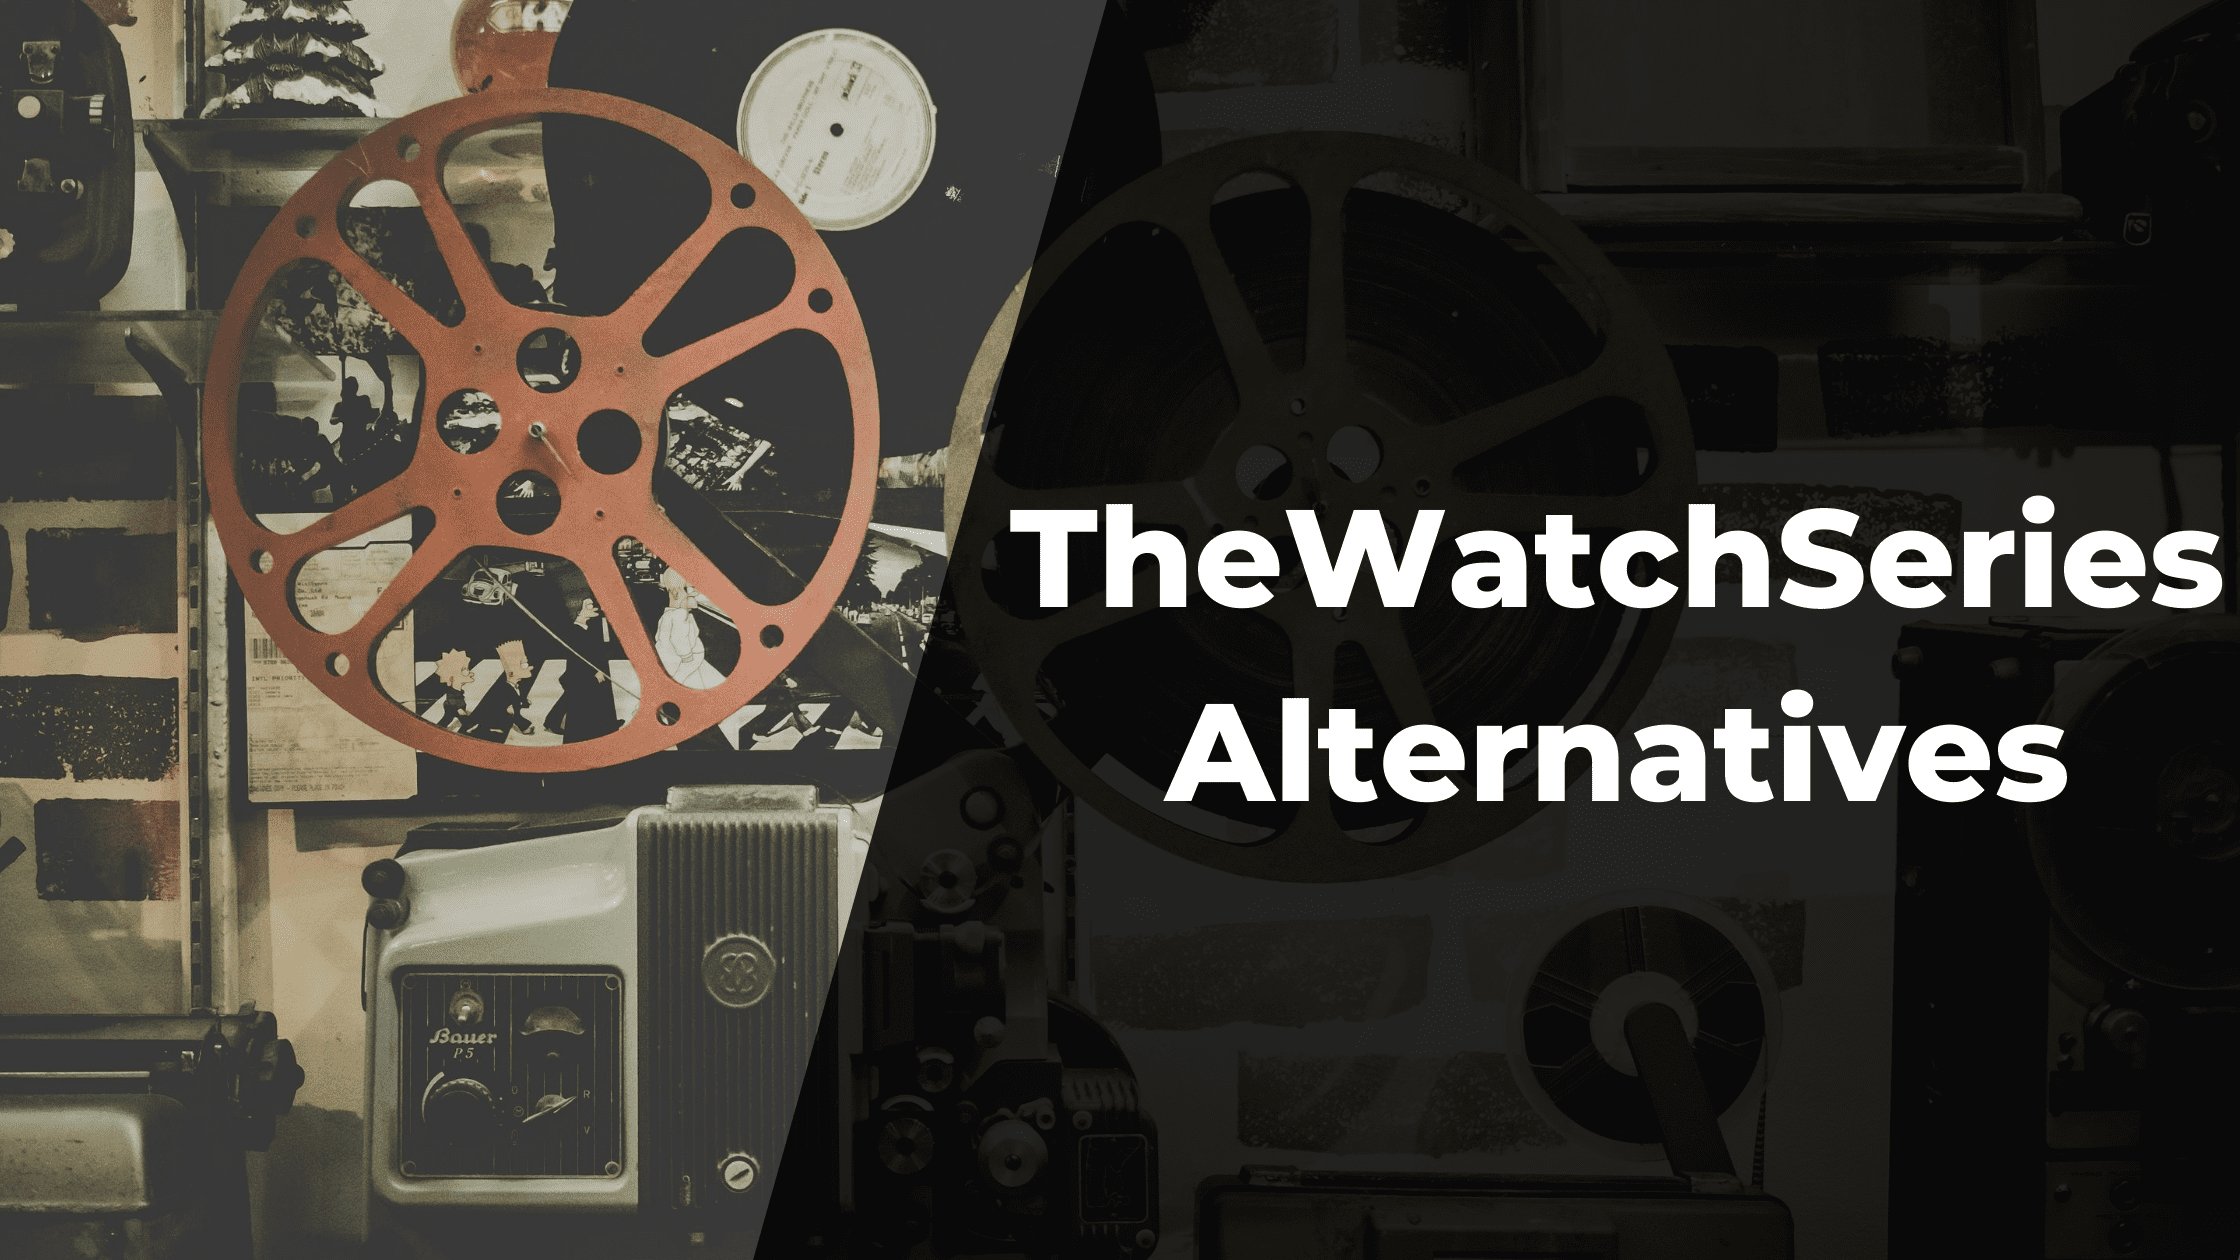 TheWatchSeries.to Alternatives